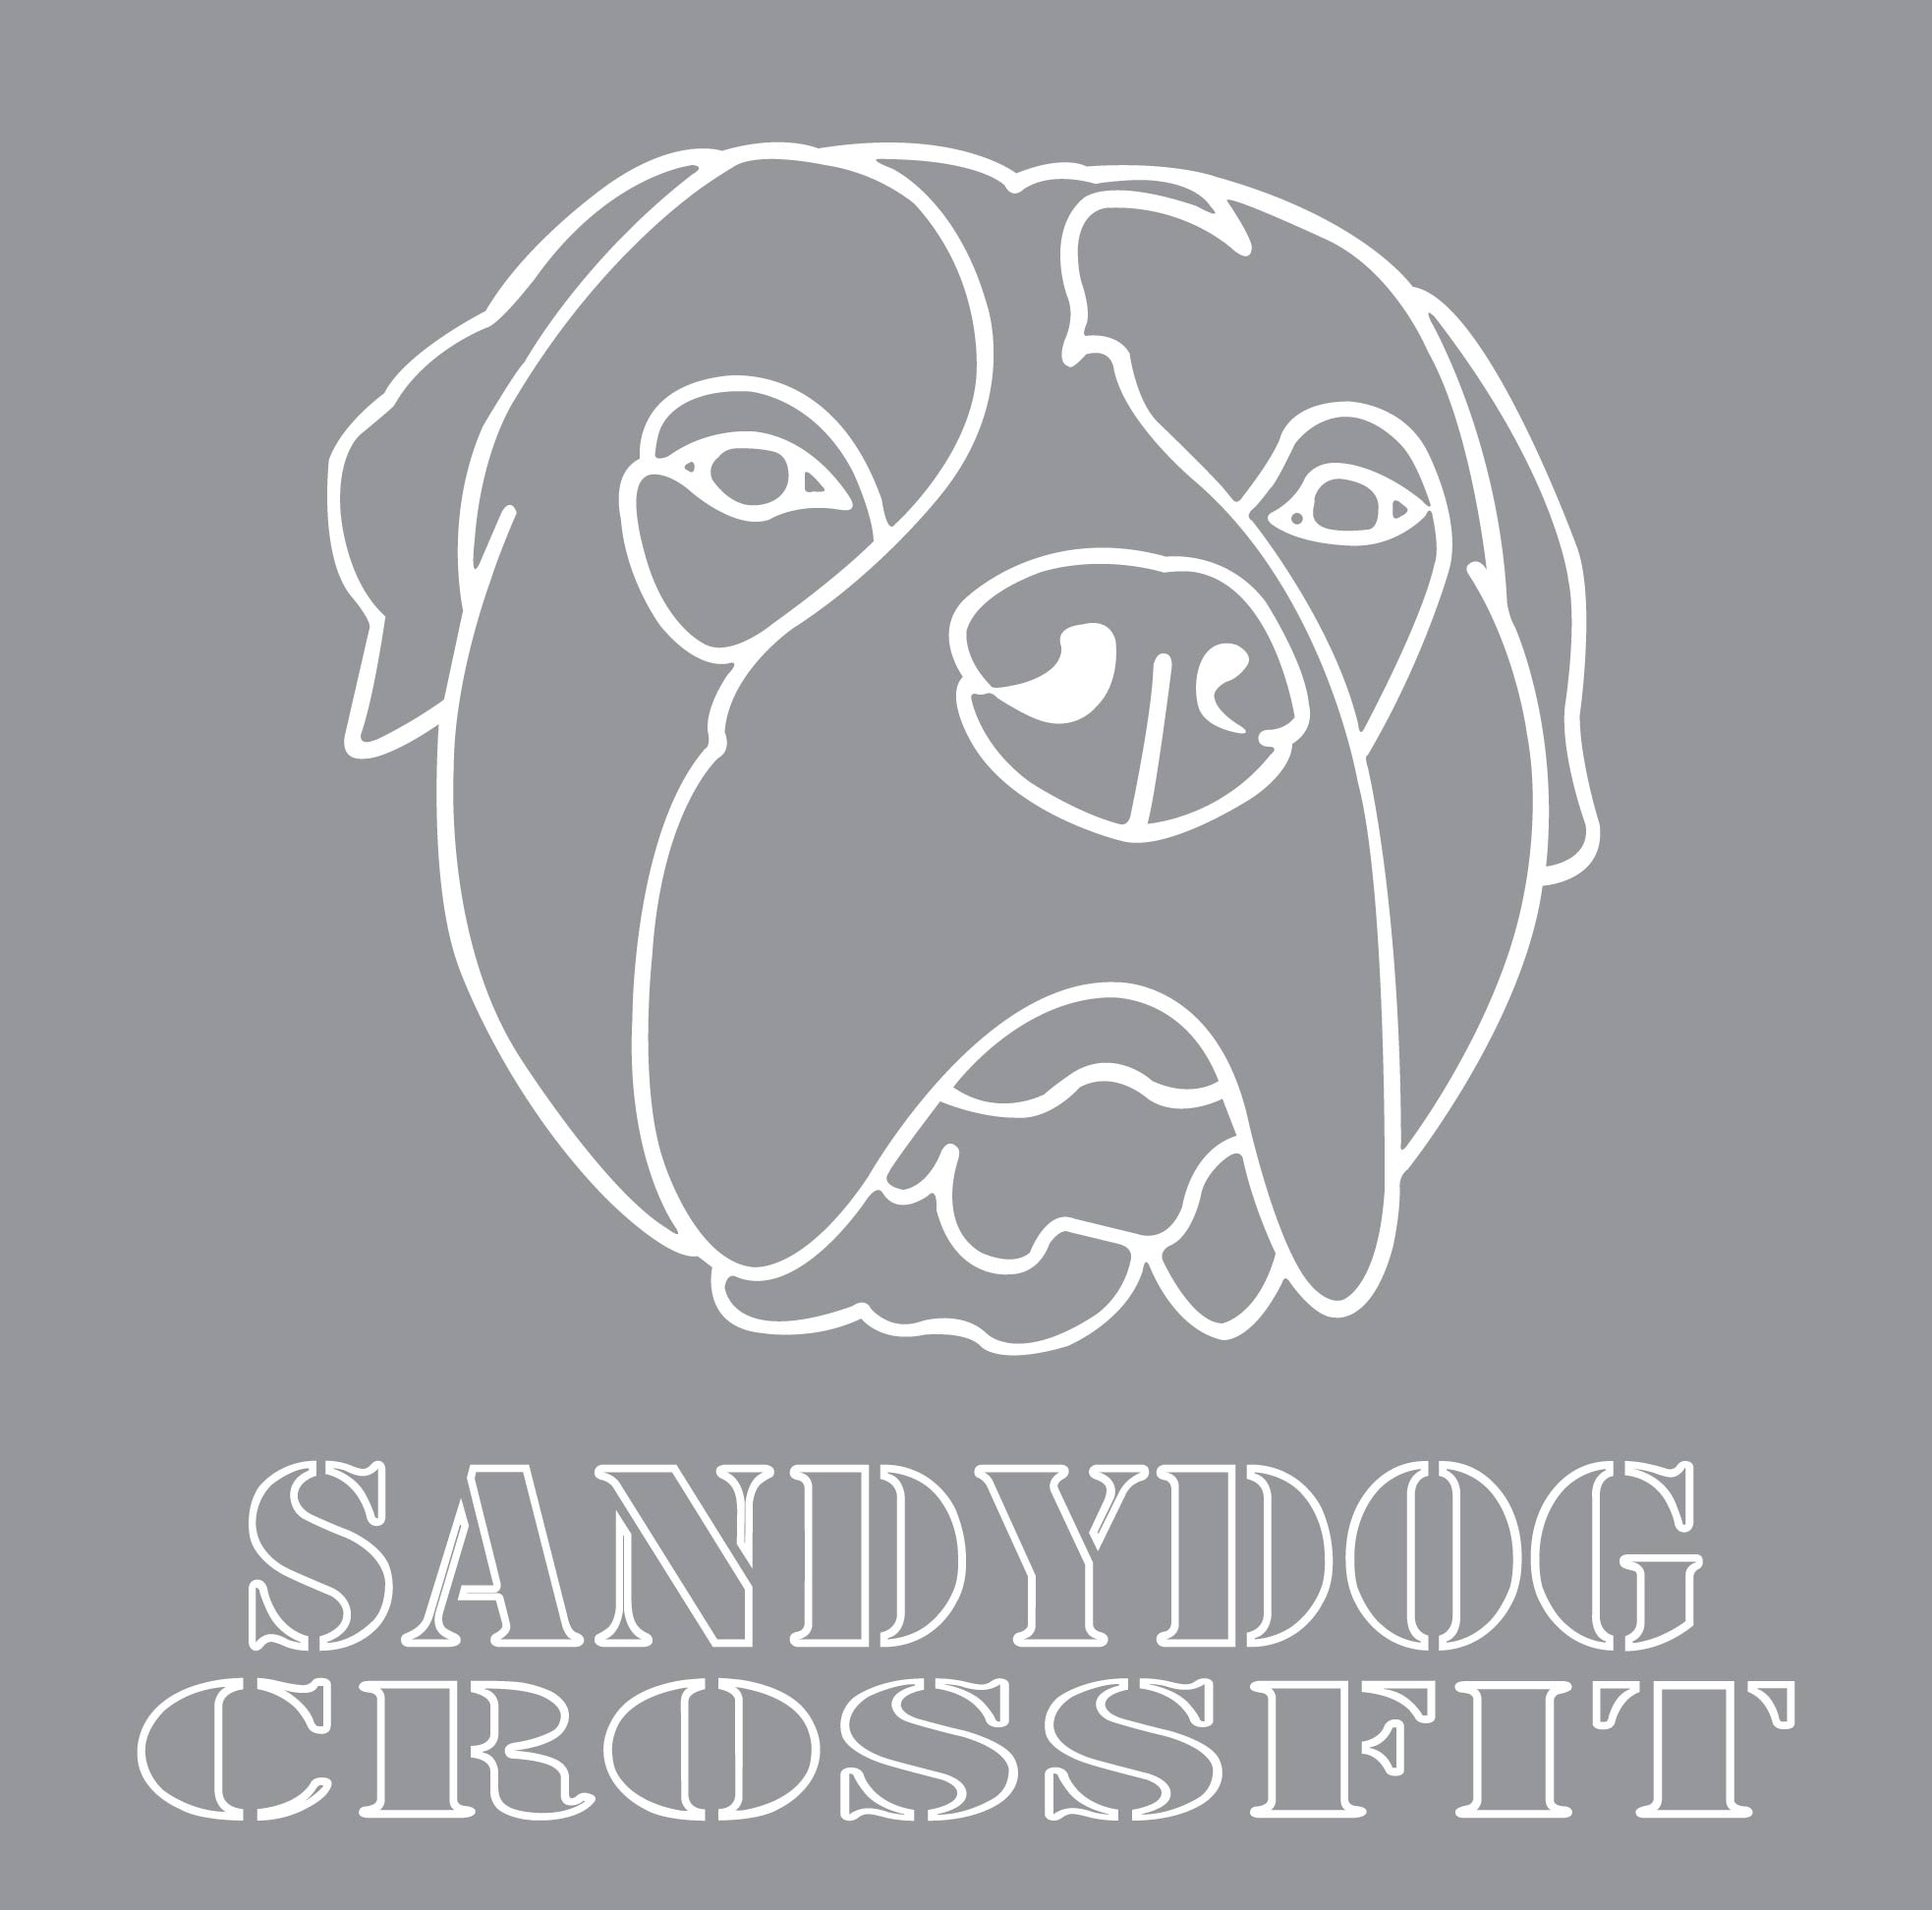 Sandy Dog Crossfit print